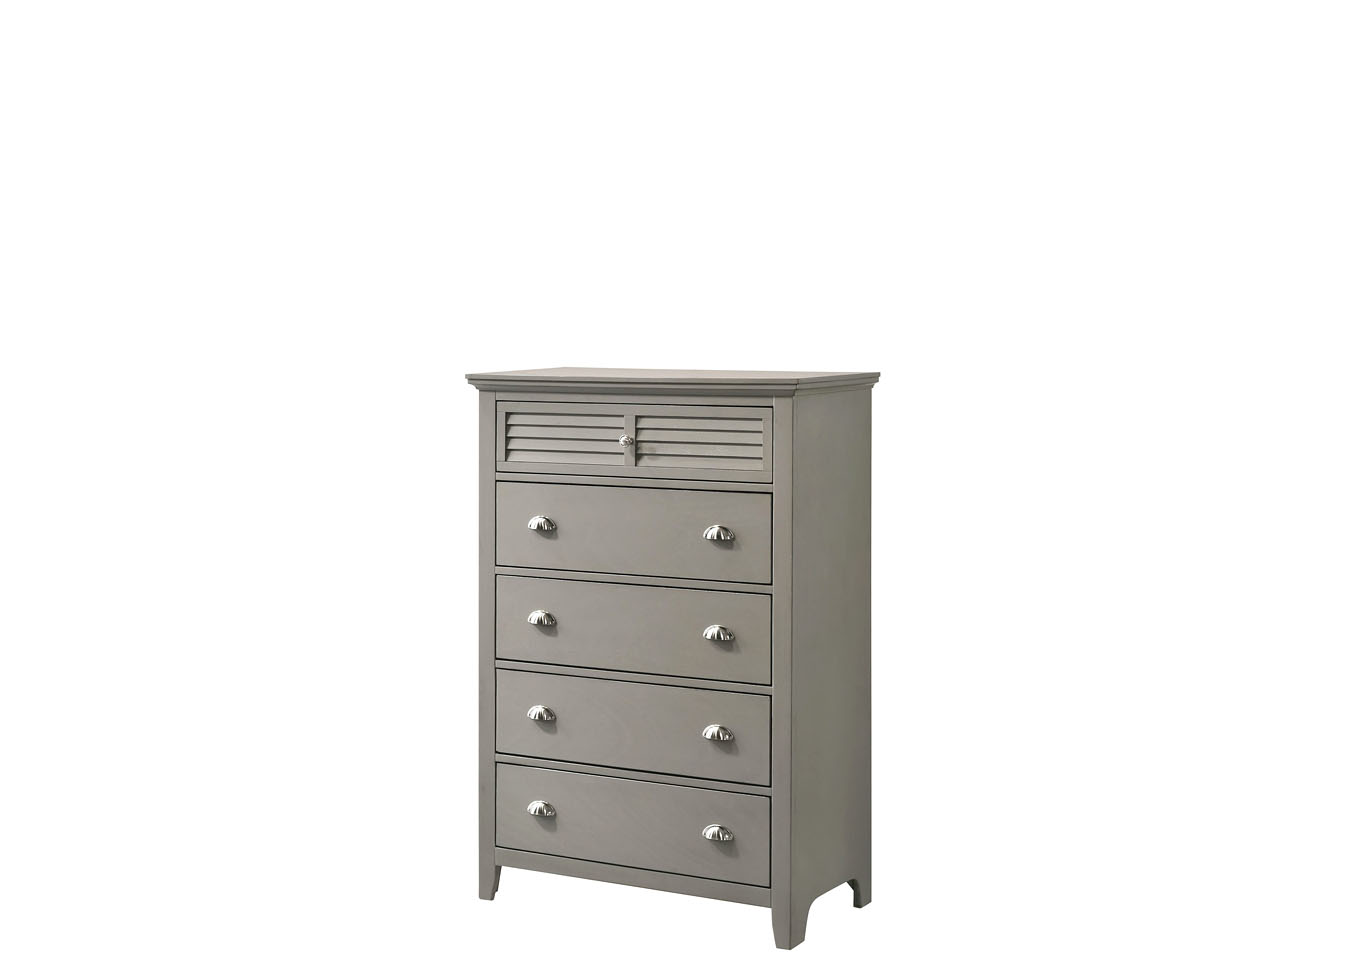 Jazz 5 Drawer Chest - Gray,Instore